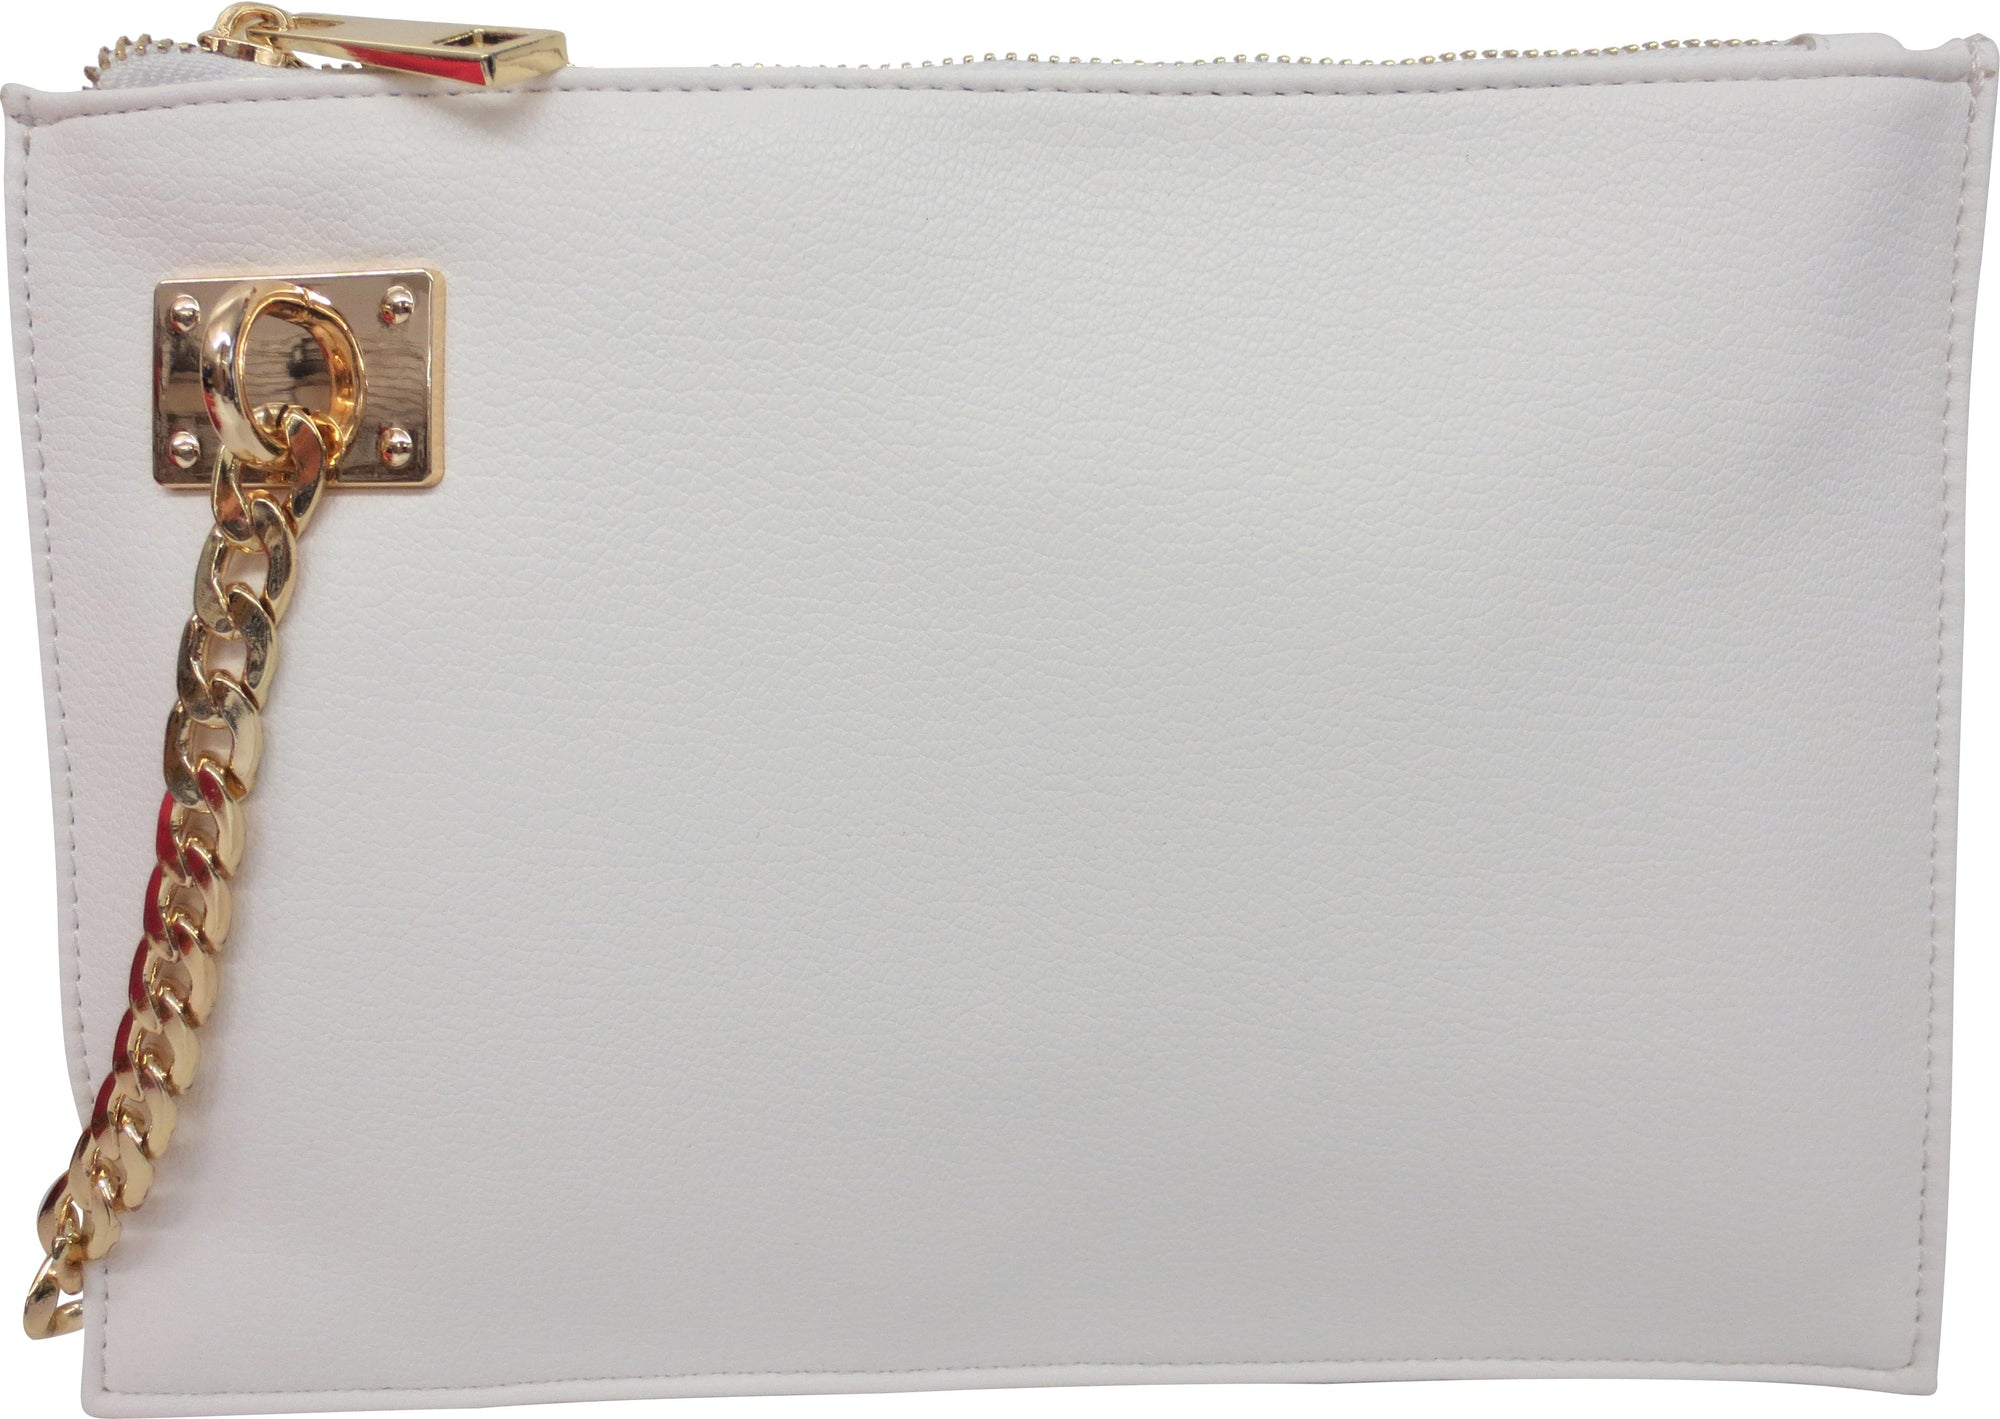 Wristlet with Chain Detail | White (CLEARANCE) - Susie O's Handbags